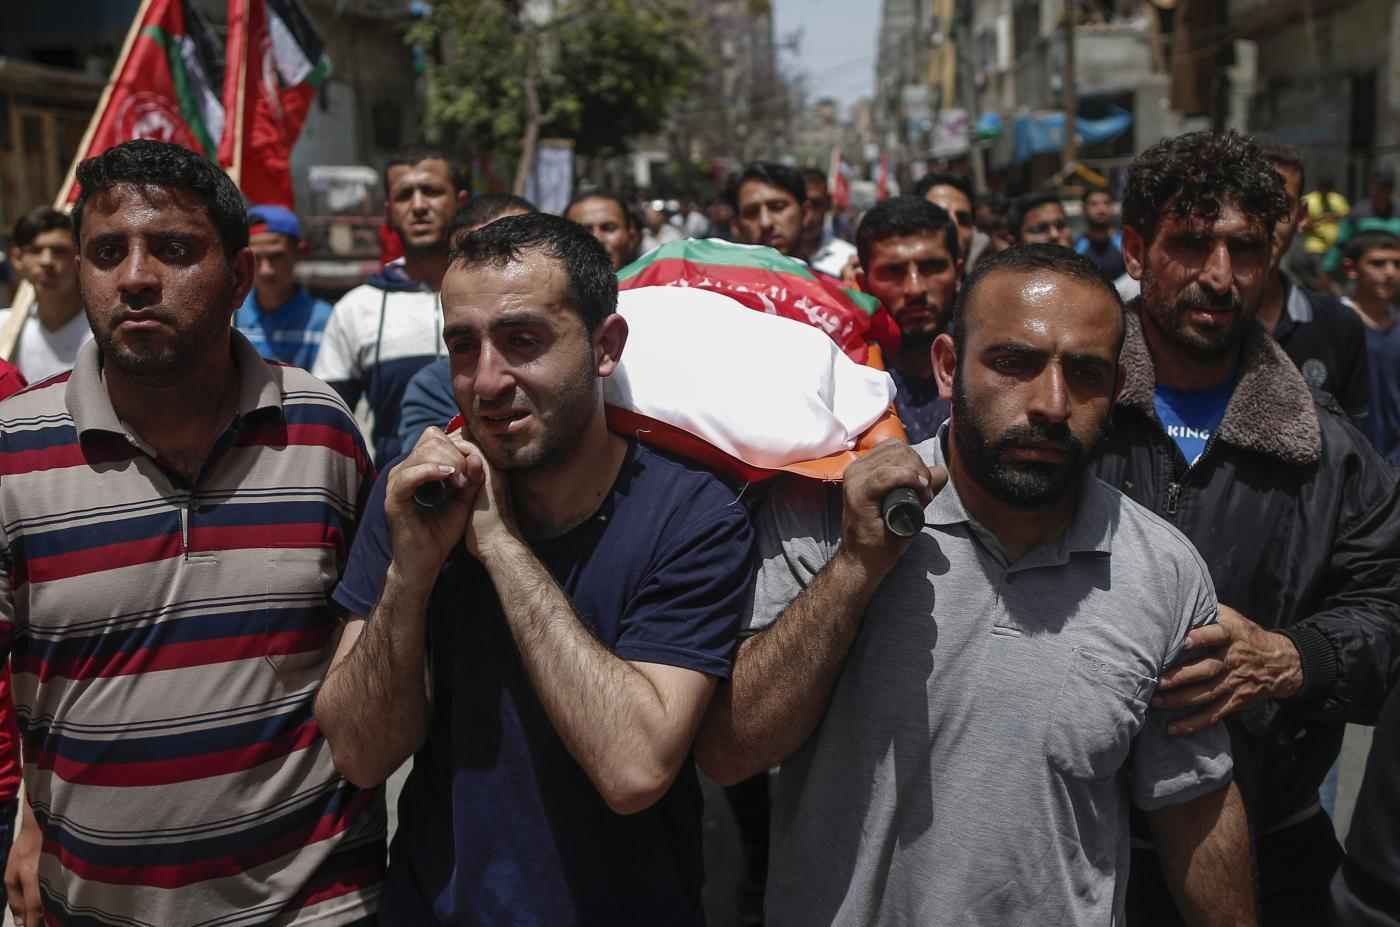 Relatives carry the body of a Palestinian, who was killed in Israeli strikes the previous day, during a funeral ceremony in Beit Lahia, in northern Gaza Strip (AFP)